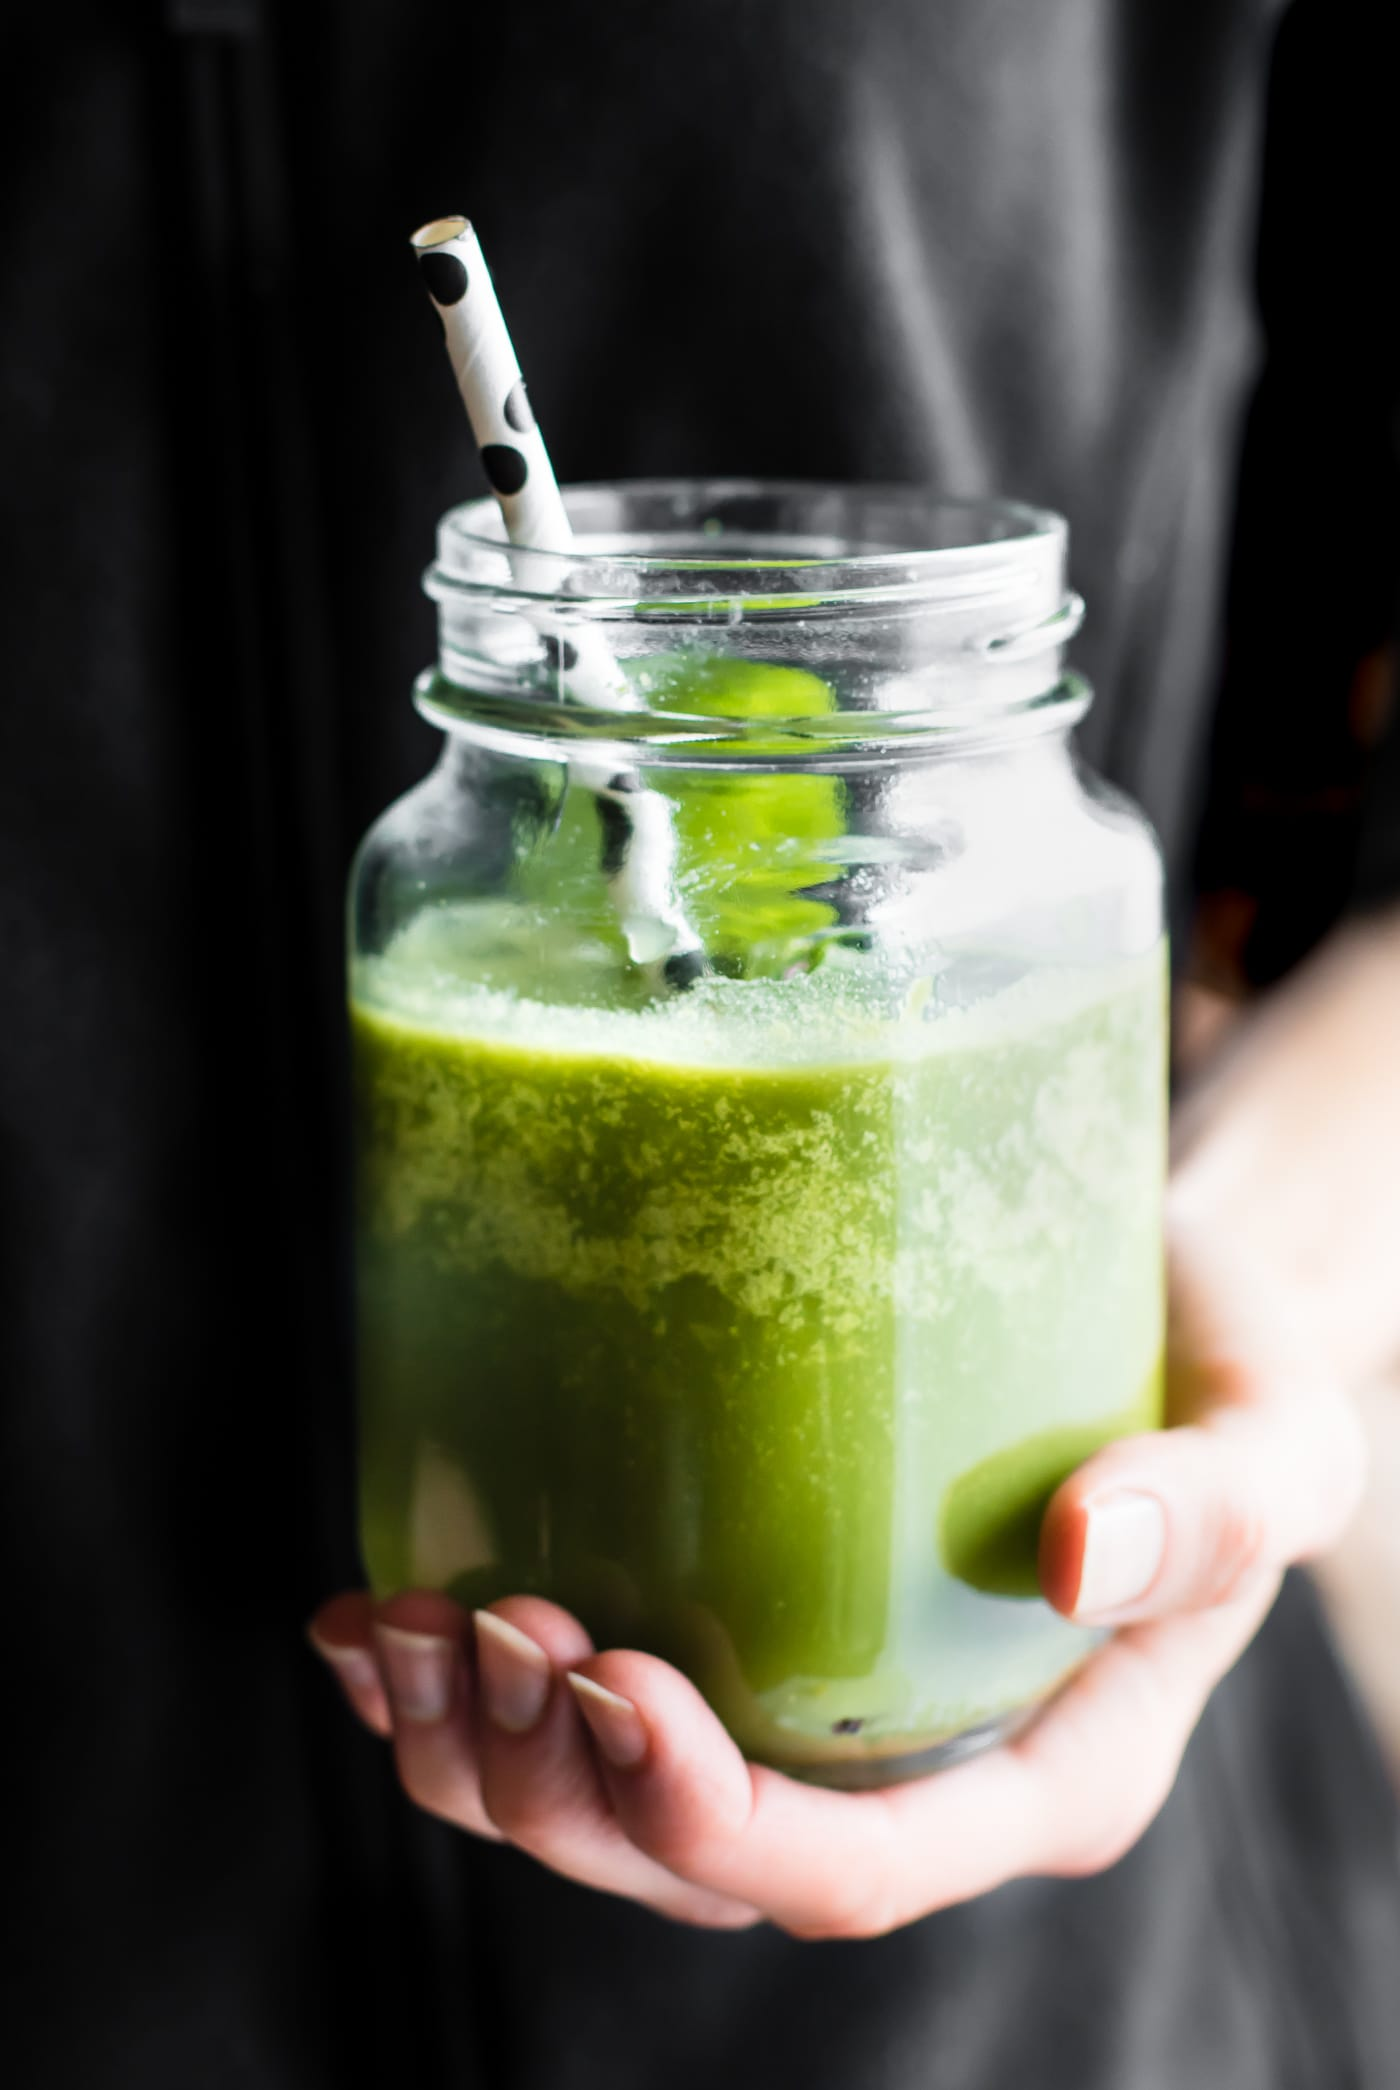 A POWER FUEL Green Smoothie to kick start the day. Citrus fruit, apple, Mint, Leafy Greens, and coconut oil blended to boost Energy. Whole 30, Paleo, Vegan.